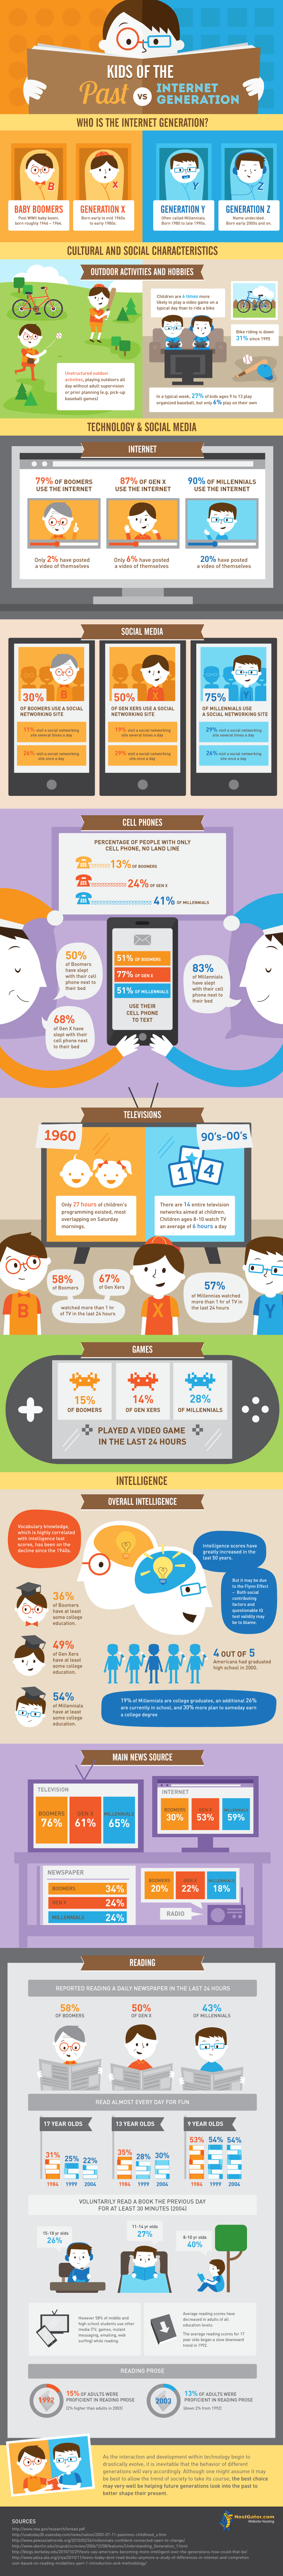 Kids of The Past Vs Internet Generation ~ Educational Technology and Mobile Learning